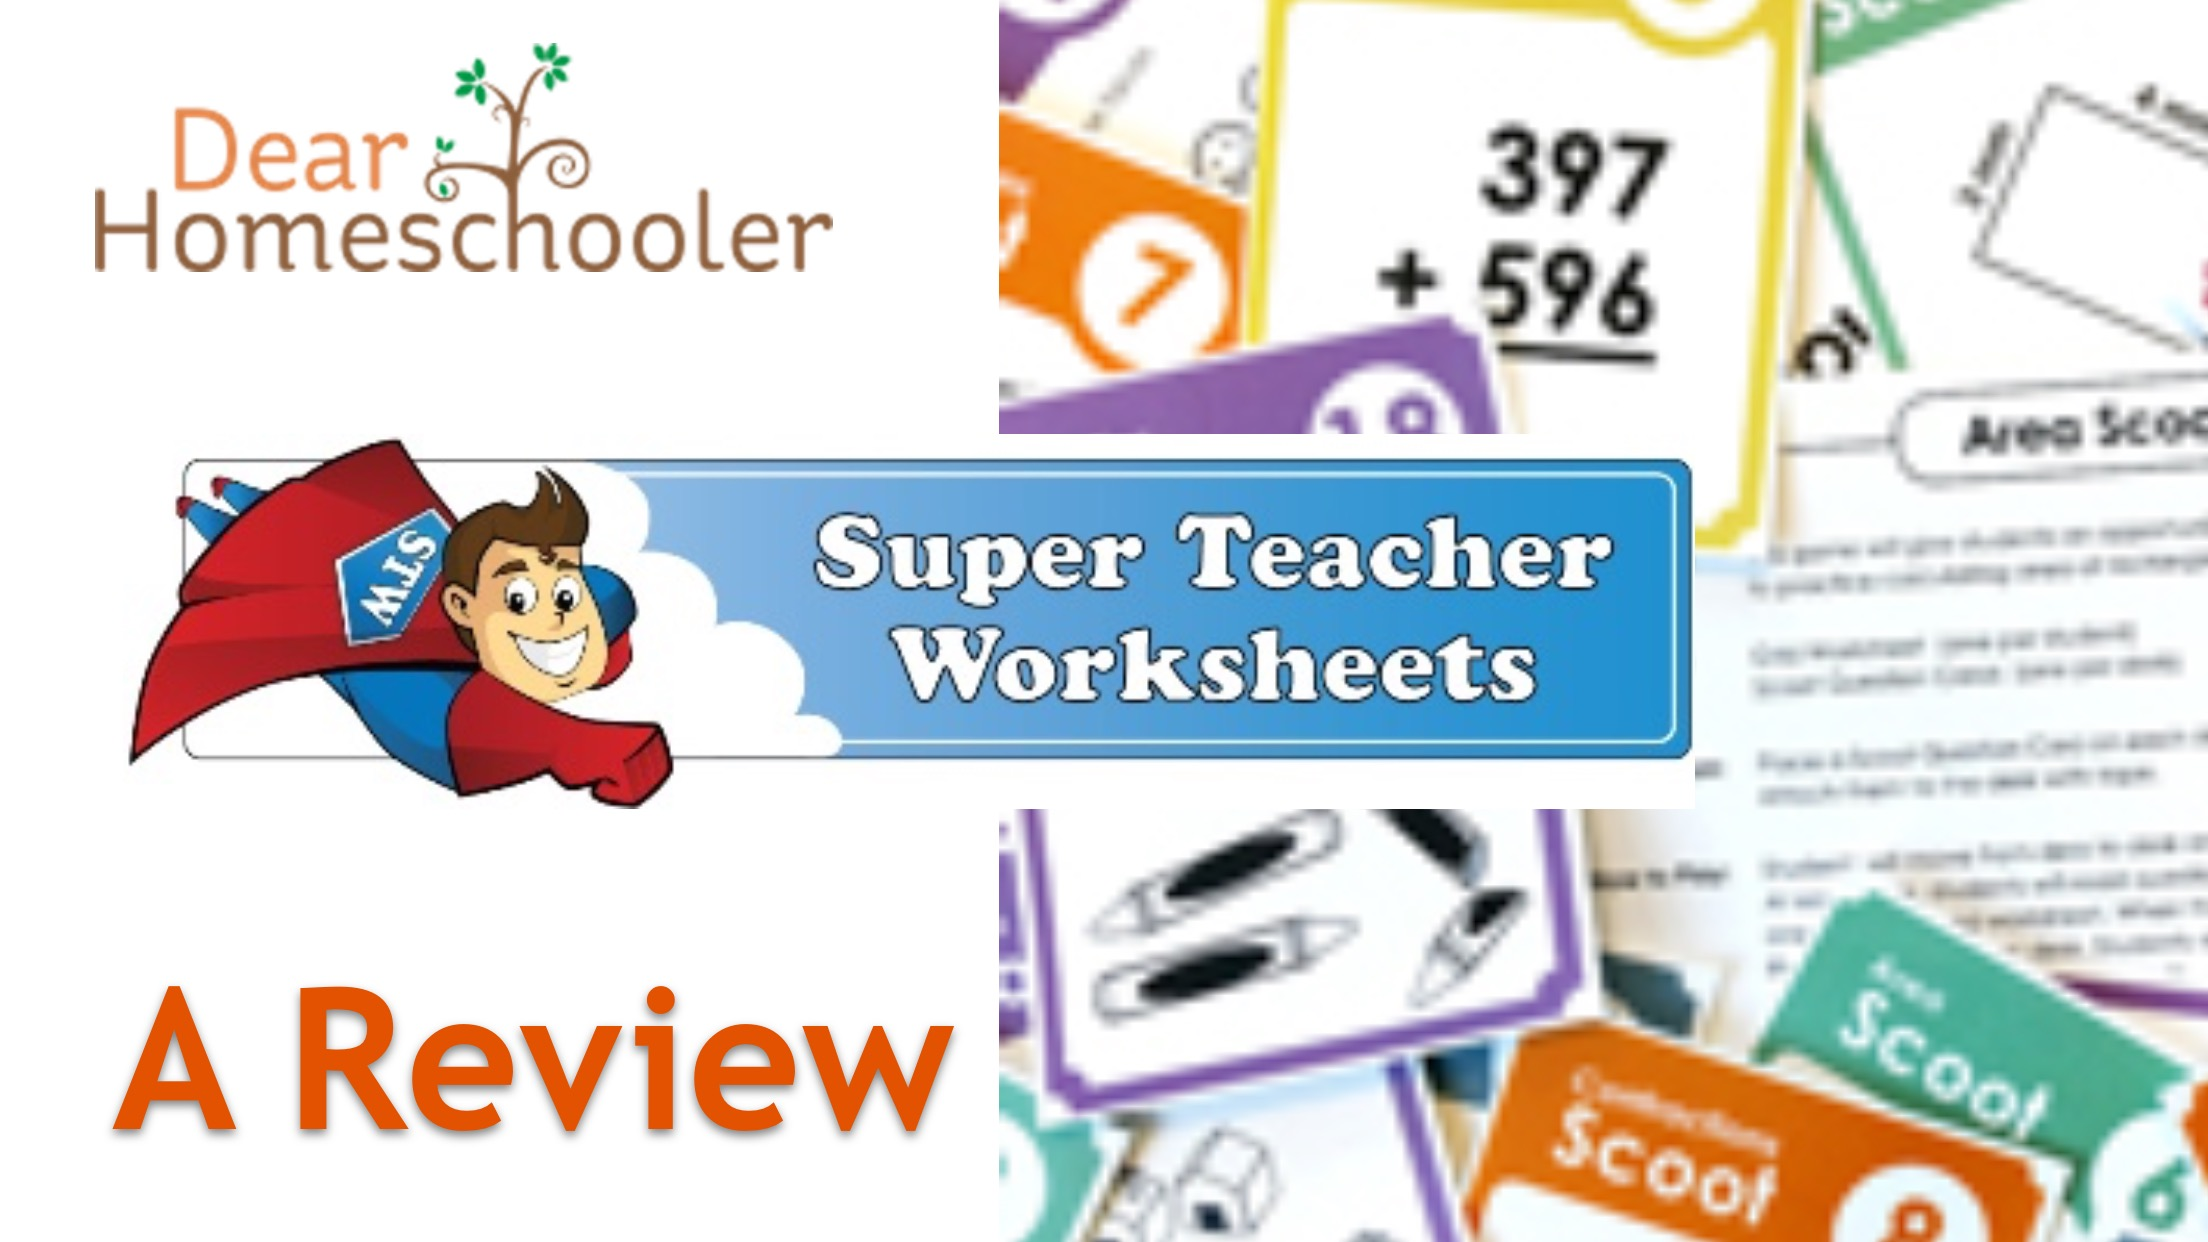 Super Teacher Worksheets: A Review • Dear Homeschooler